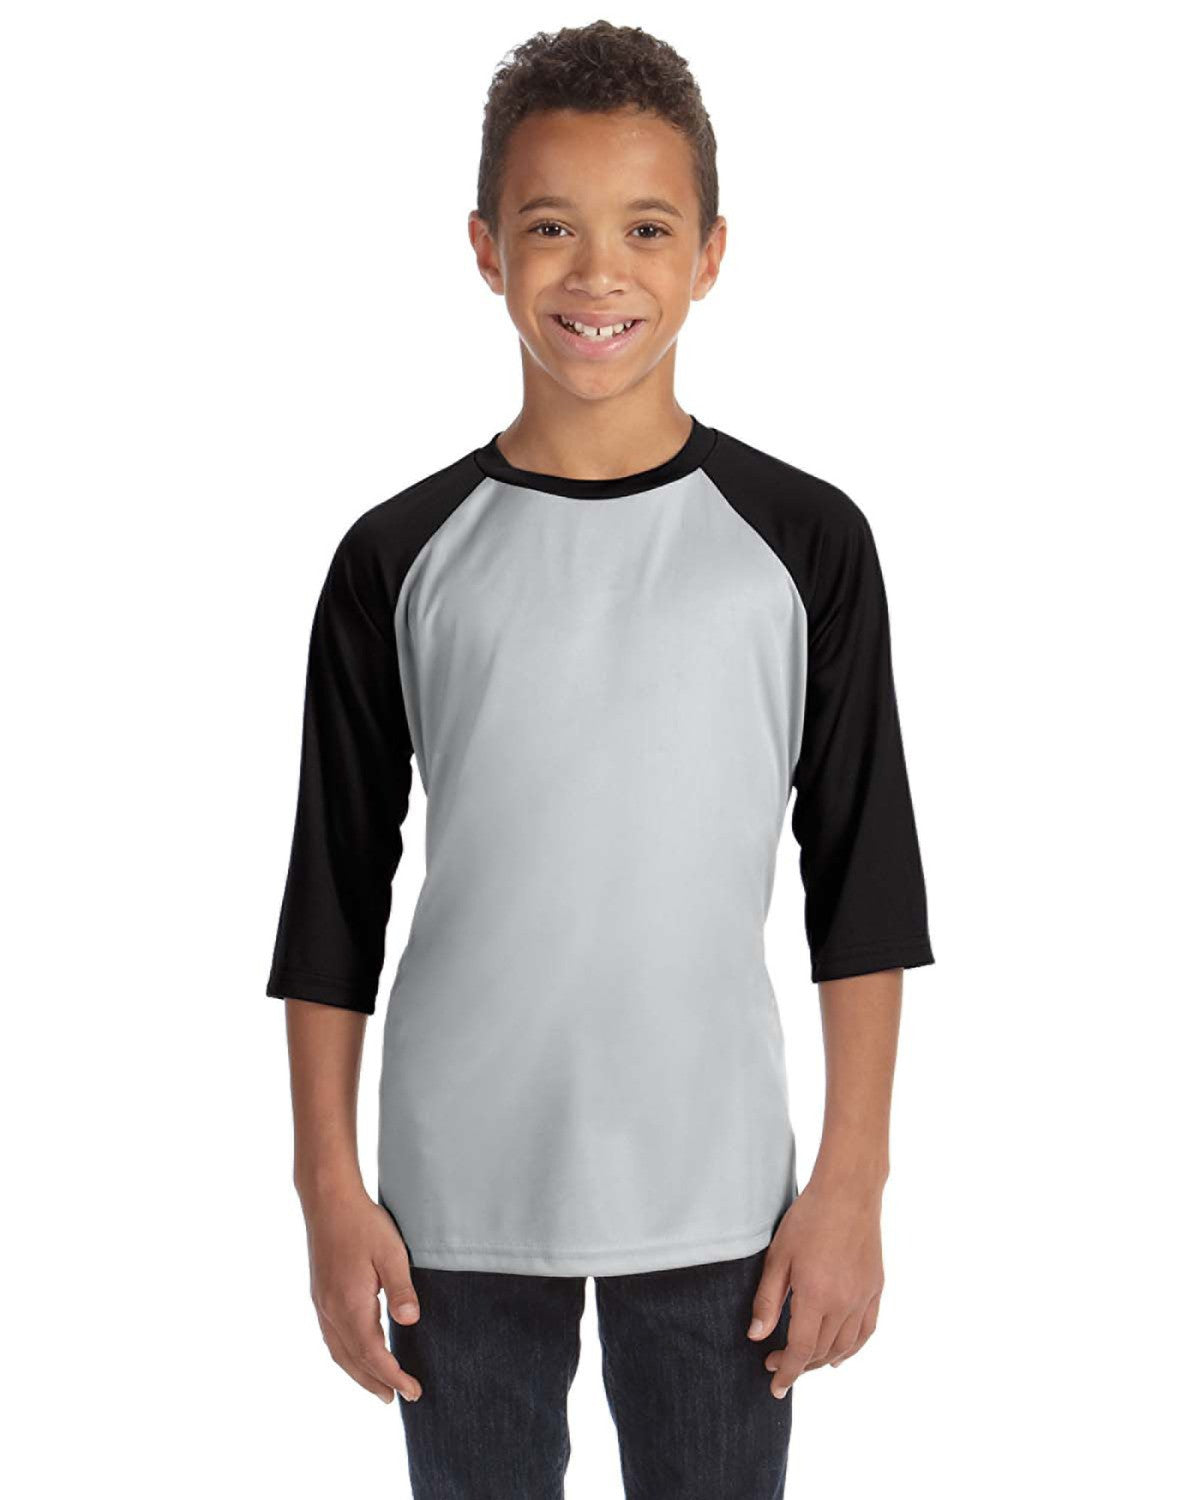 Youth Baseball T-shirt